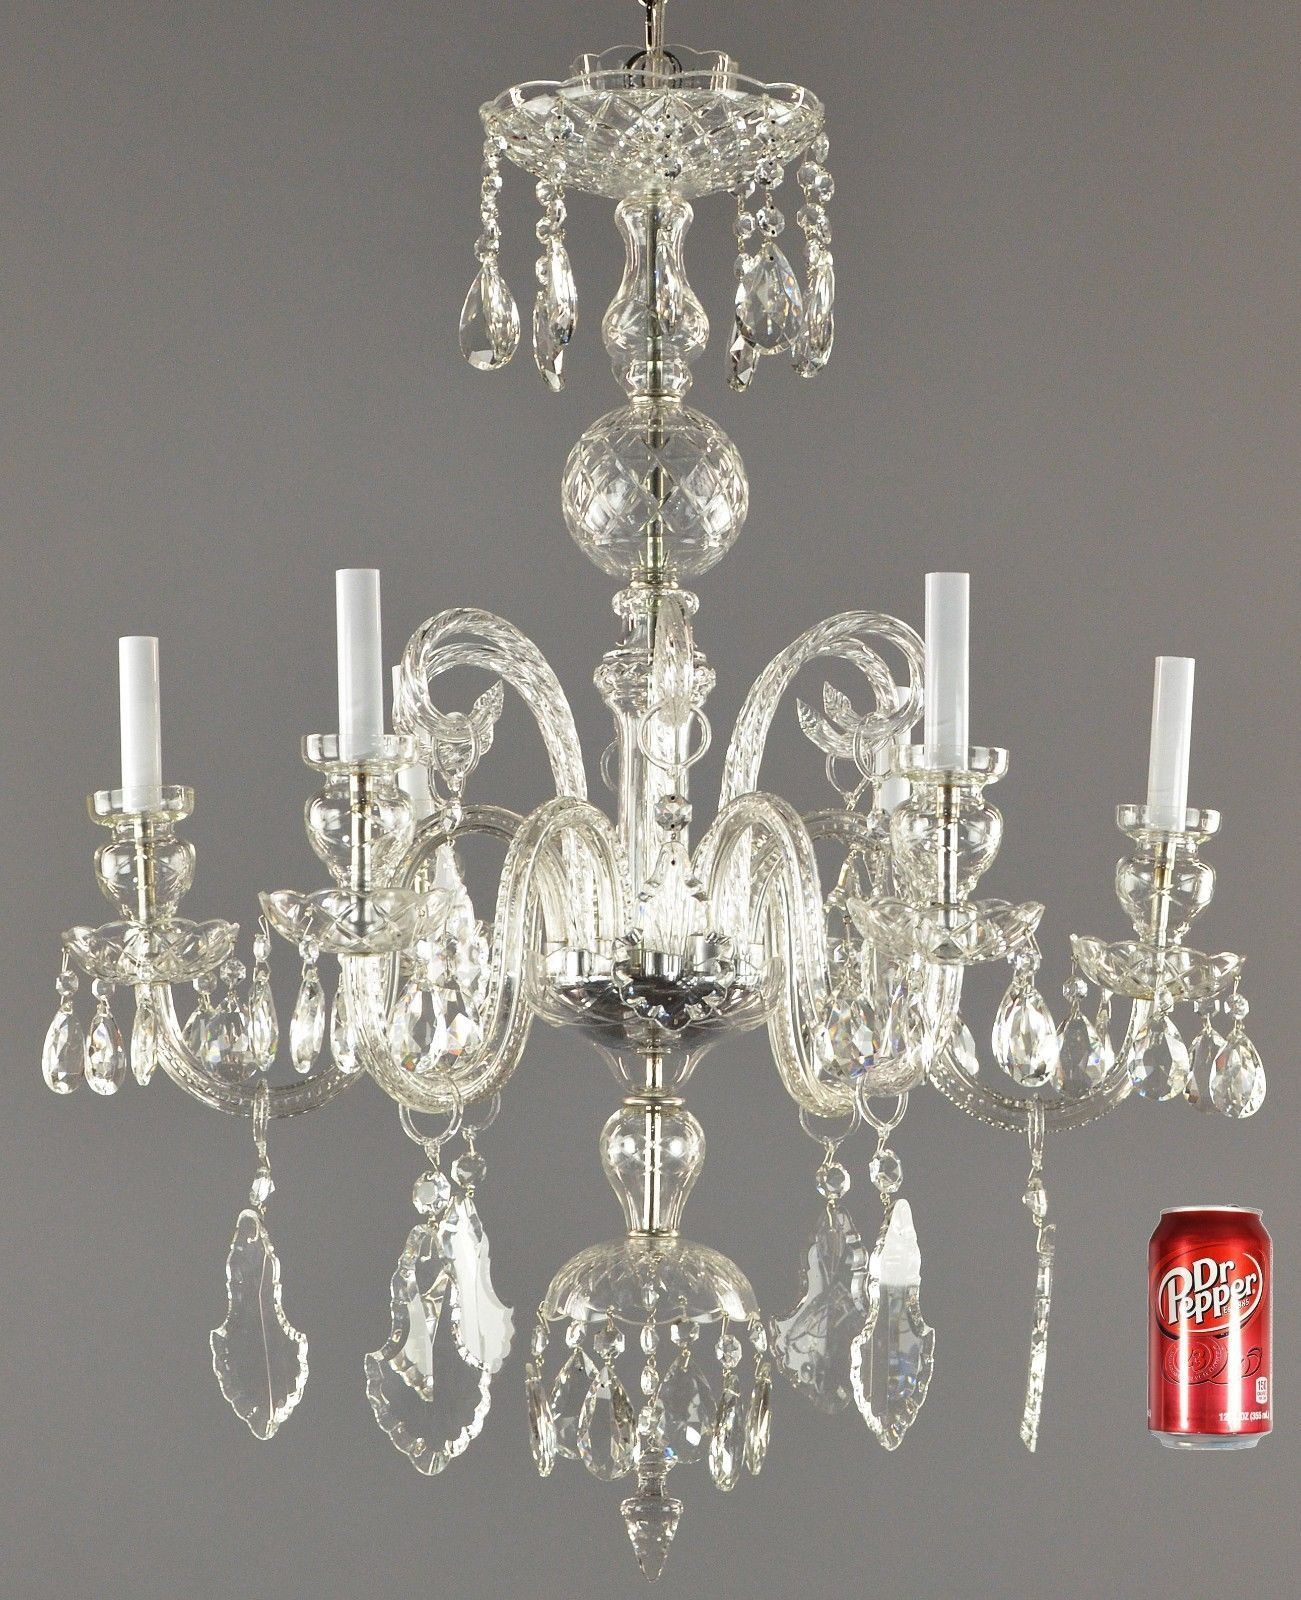 Antiques Gifts Czechoslovakian Crystal Chandelier C1930 Vintage